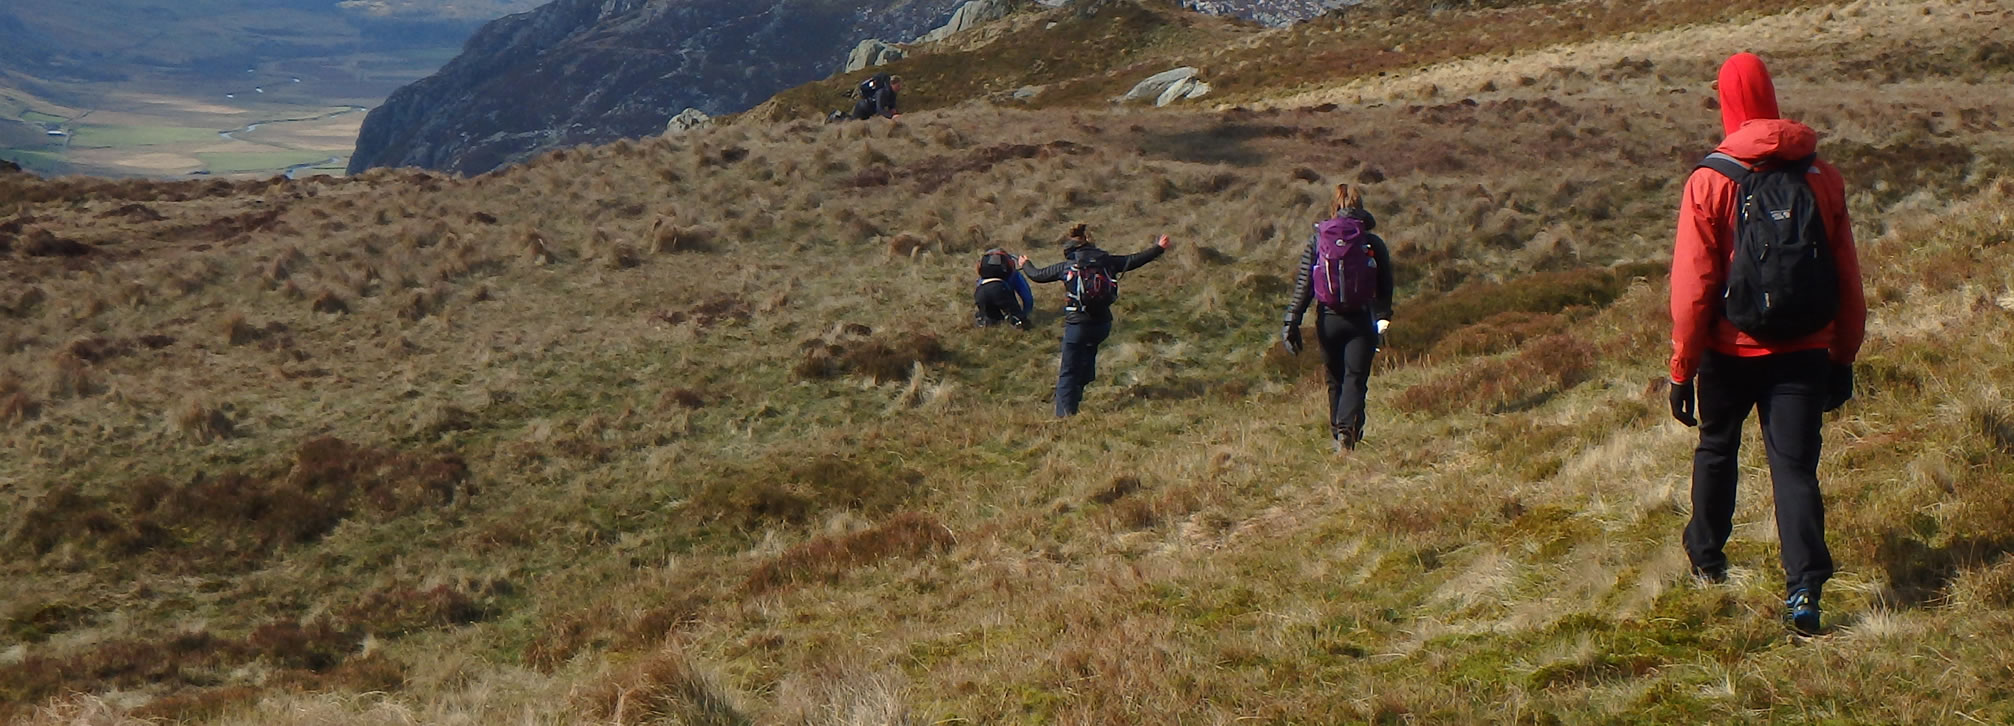 RAW Adventures - Duke of Edinburgh Award Gold Award Residential